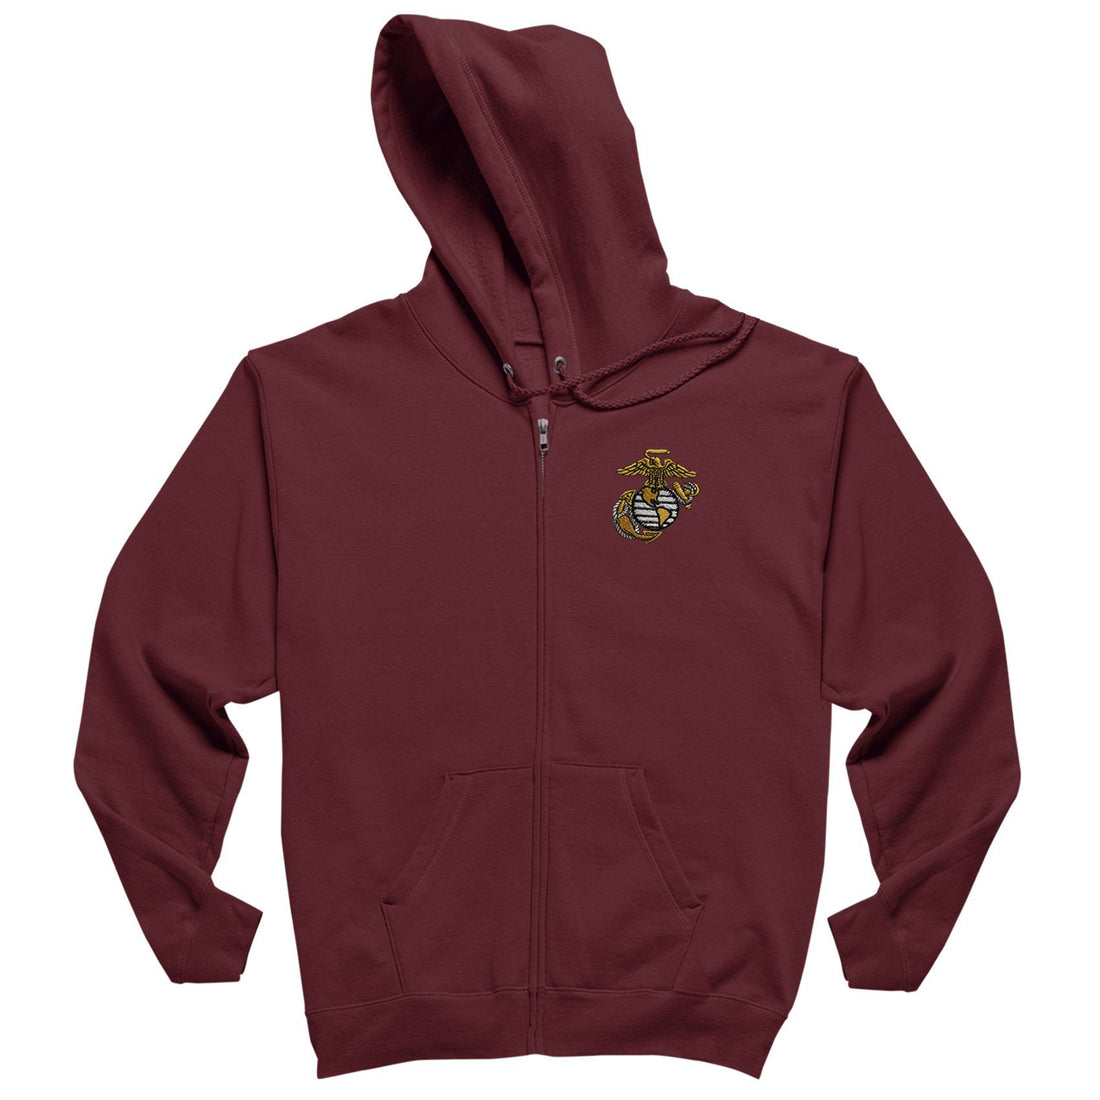 Gold EGA Embroidered Full Zipped Hoodie - Marine Corps Direct